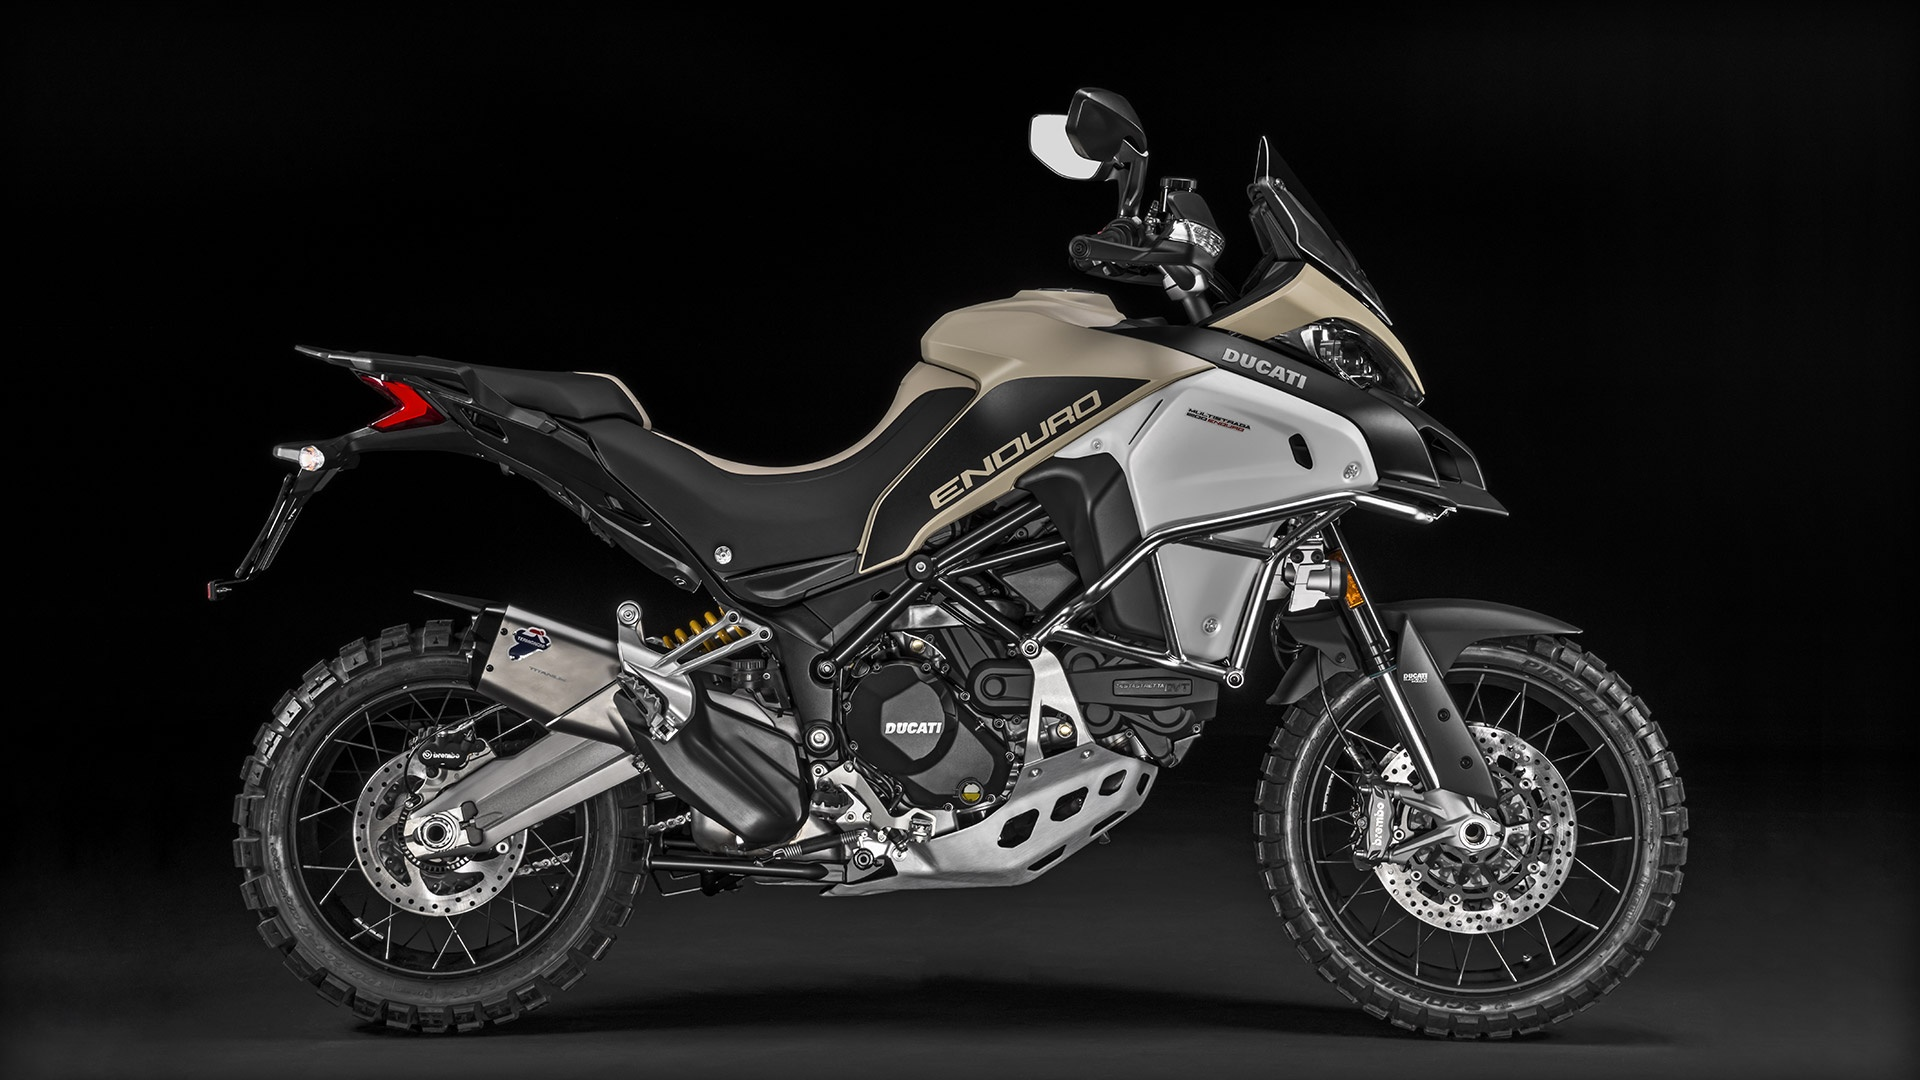 2017 Ducati Multistrada 1200 Enduro Pro for sale at Ducati Preston, Lancashire, Scotland